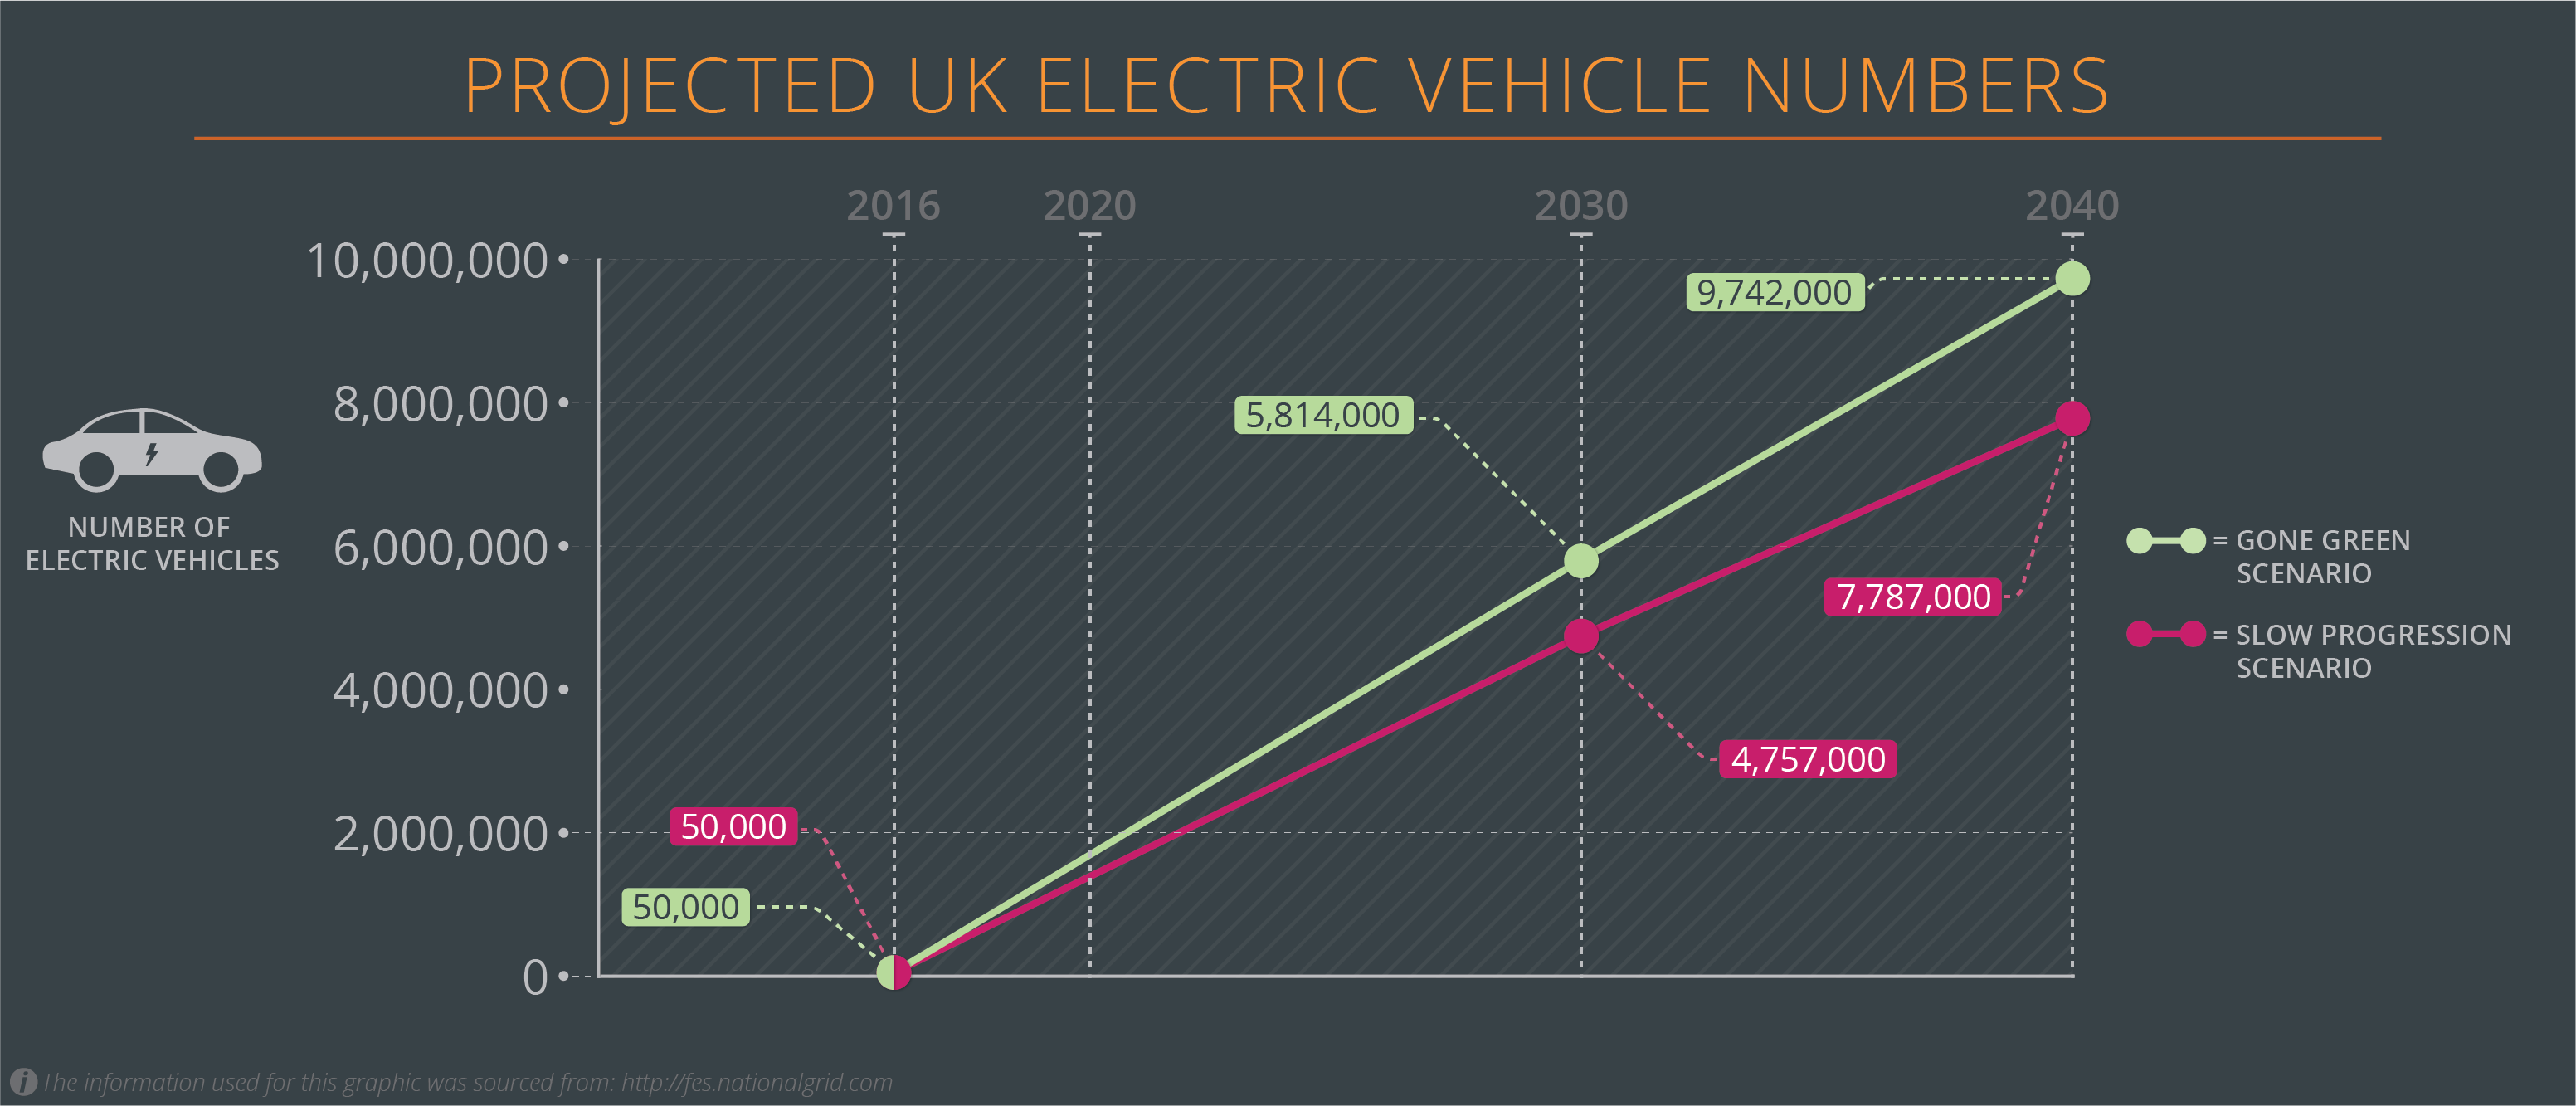 Projected UK Electric Vehicle Numbers